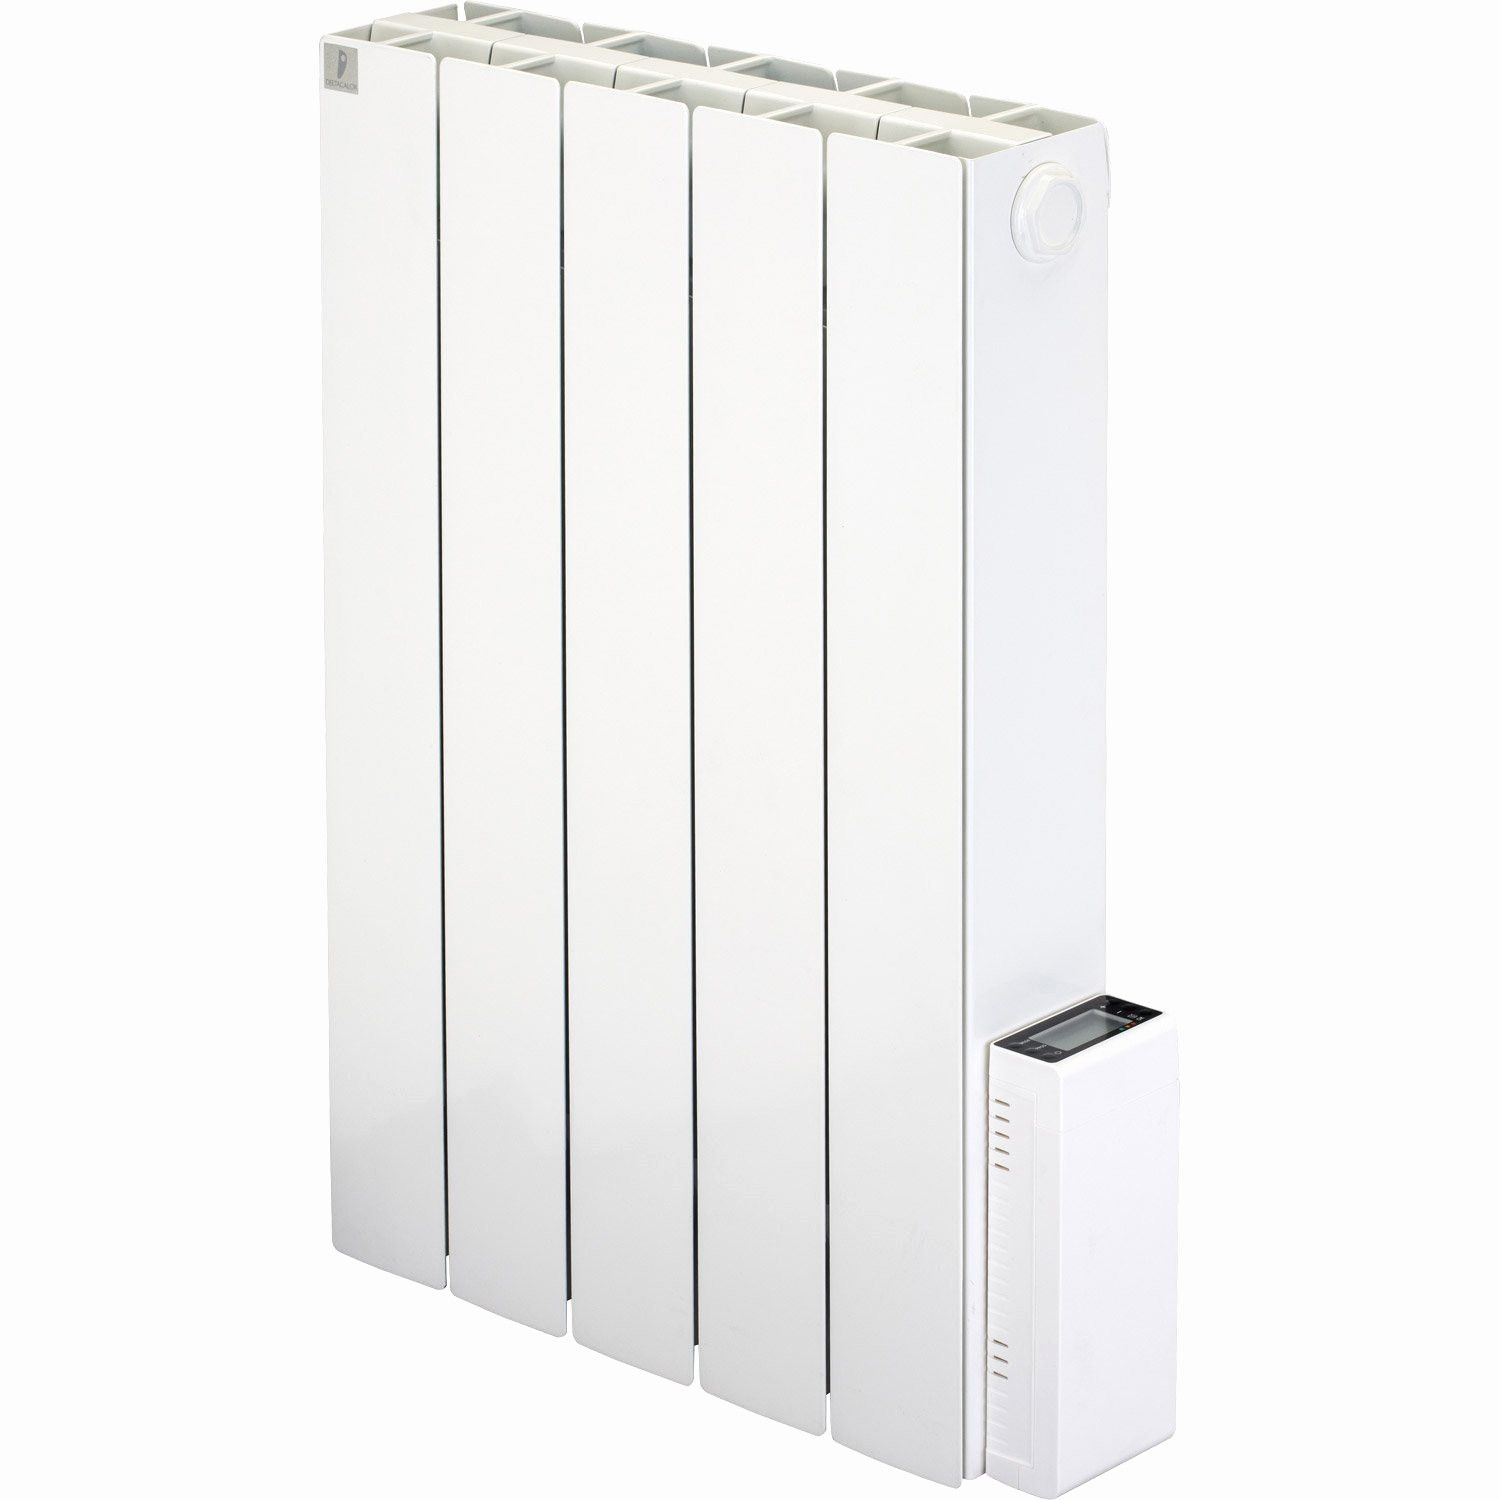 Best Of Radiateur Acova Leroy Merlin Locker Storage Storage Home Decor